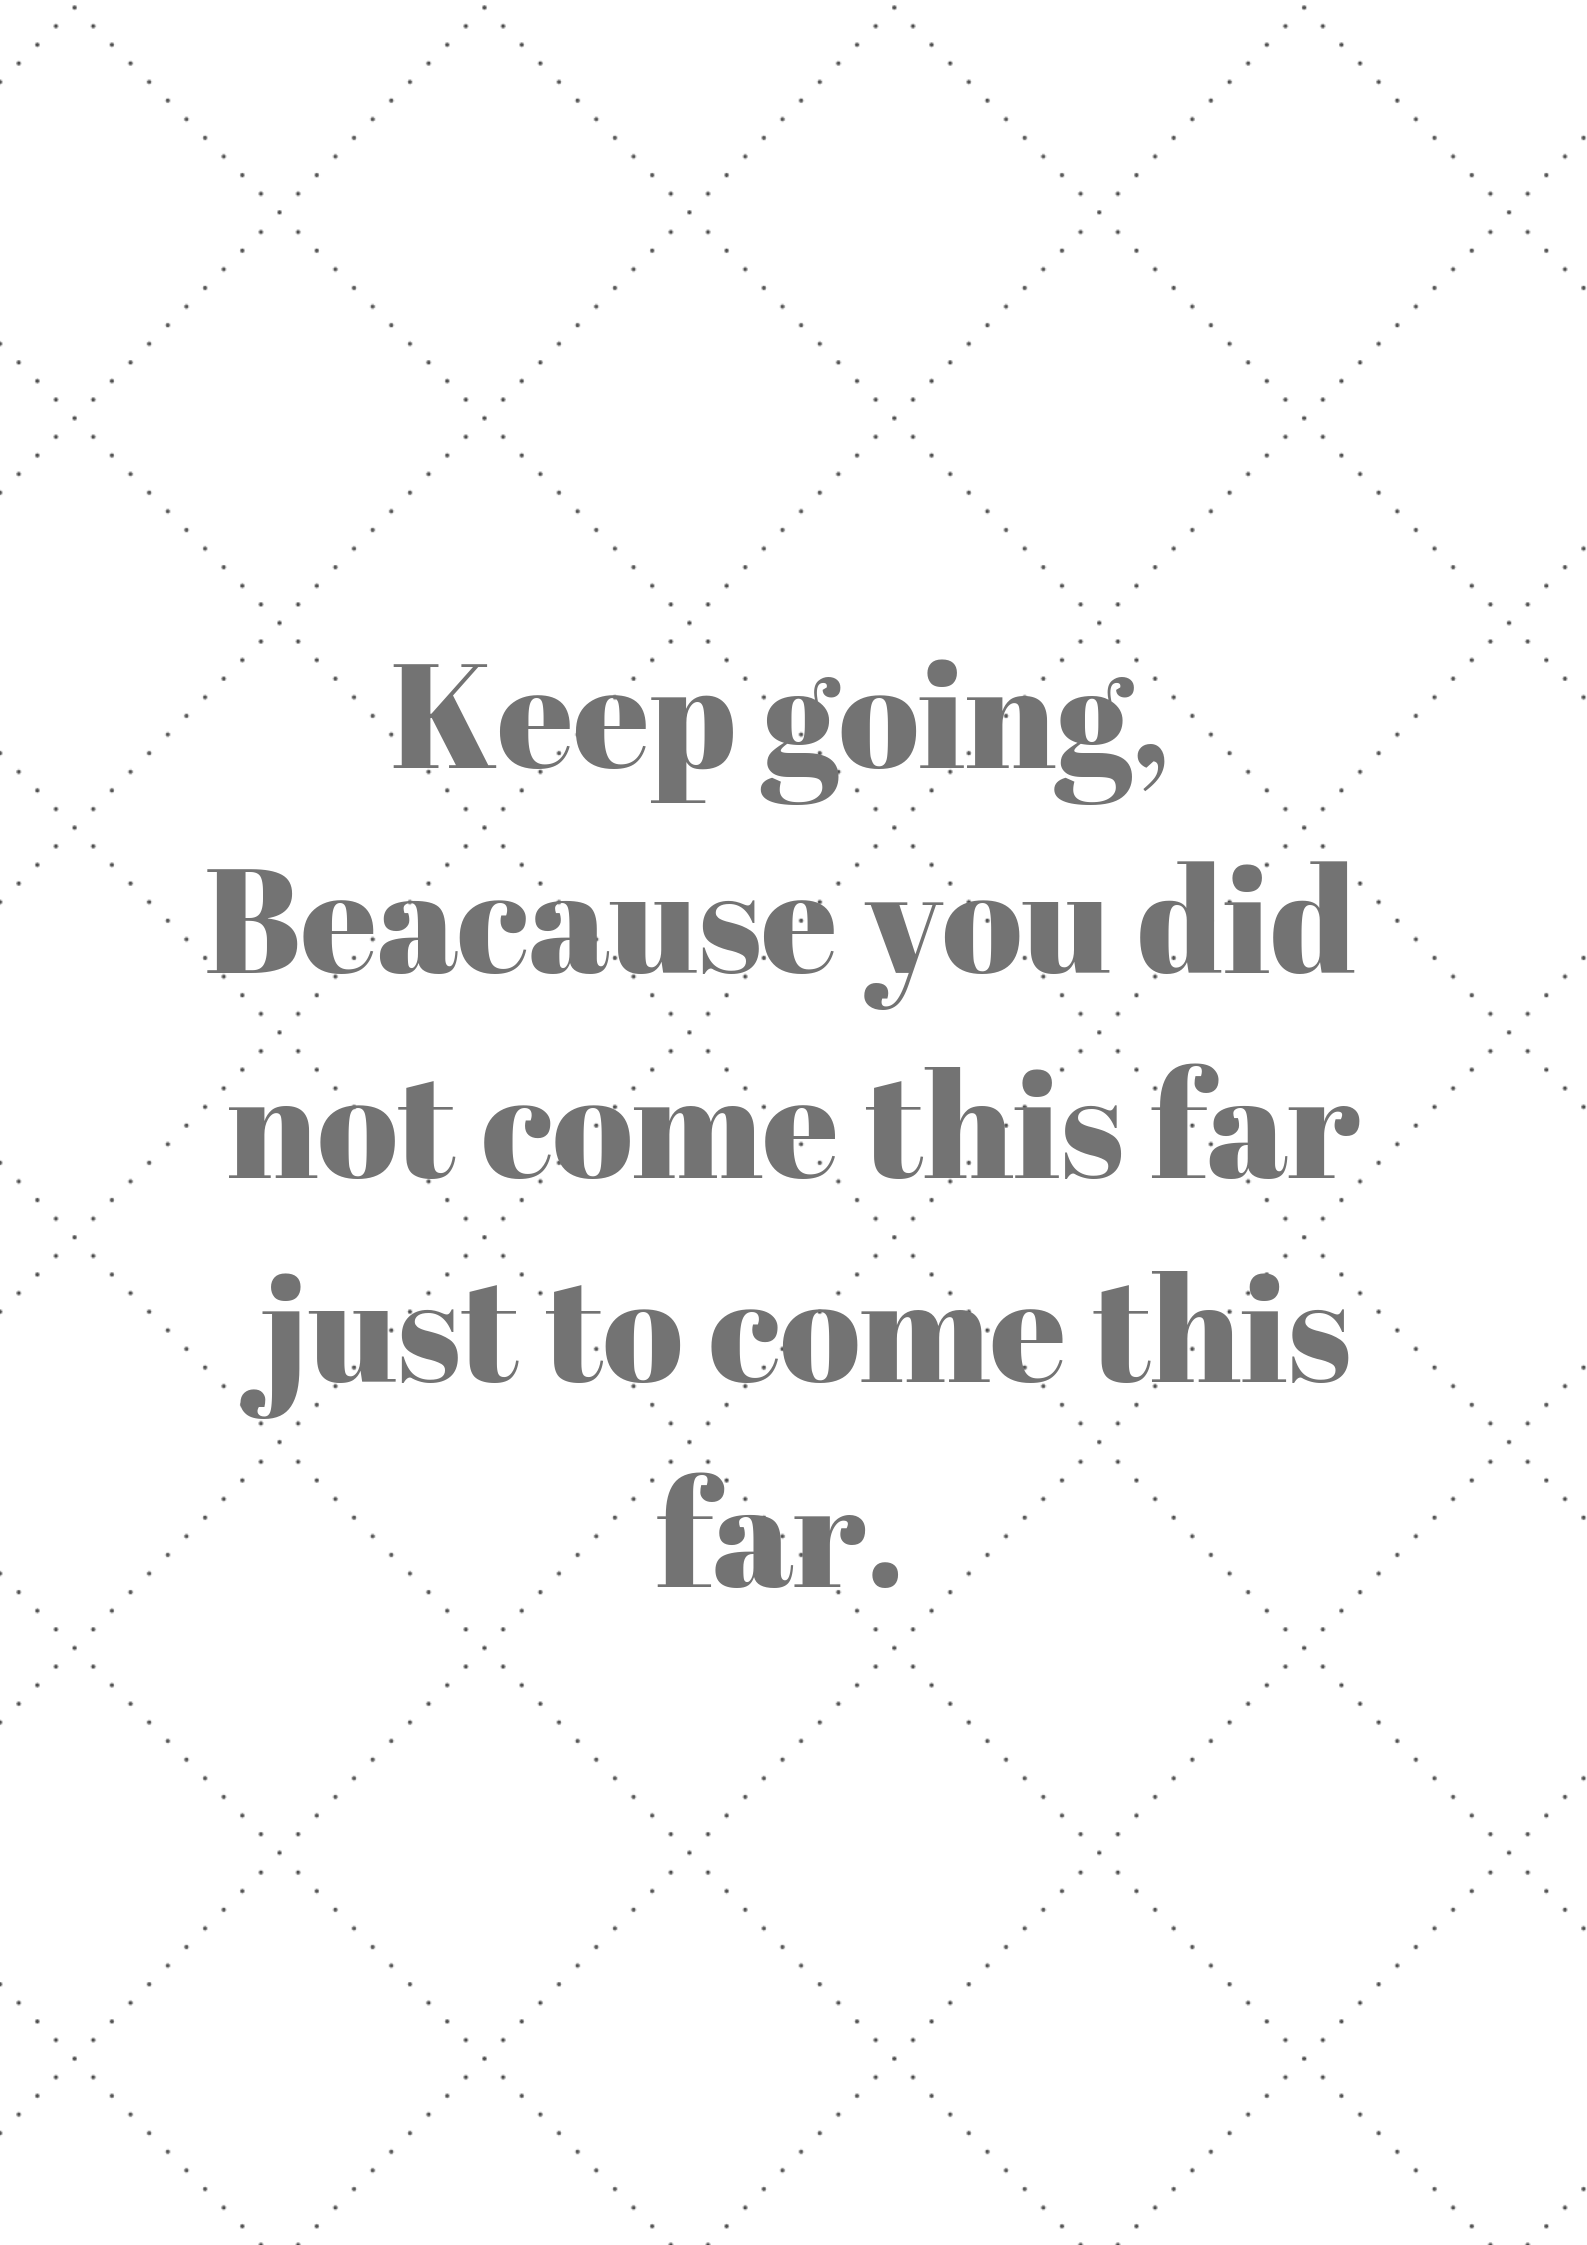 Keep going, Beacause you did not come this far just to come this far.